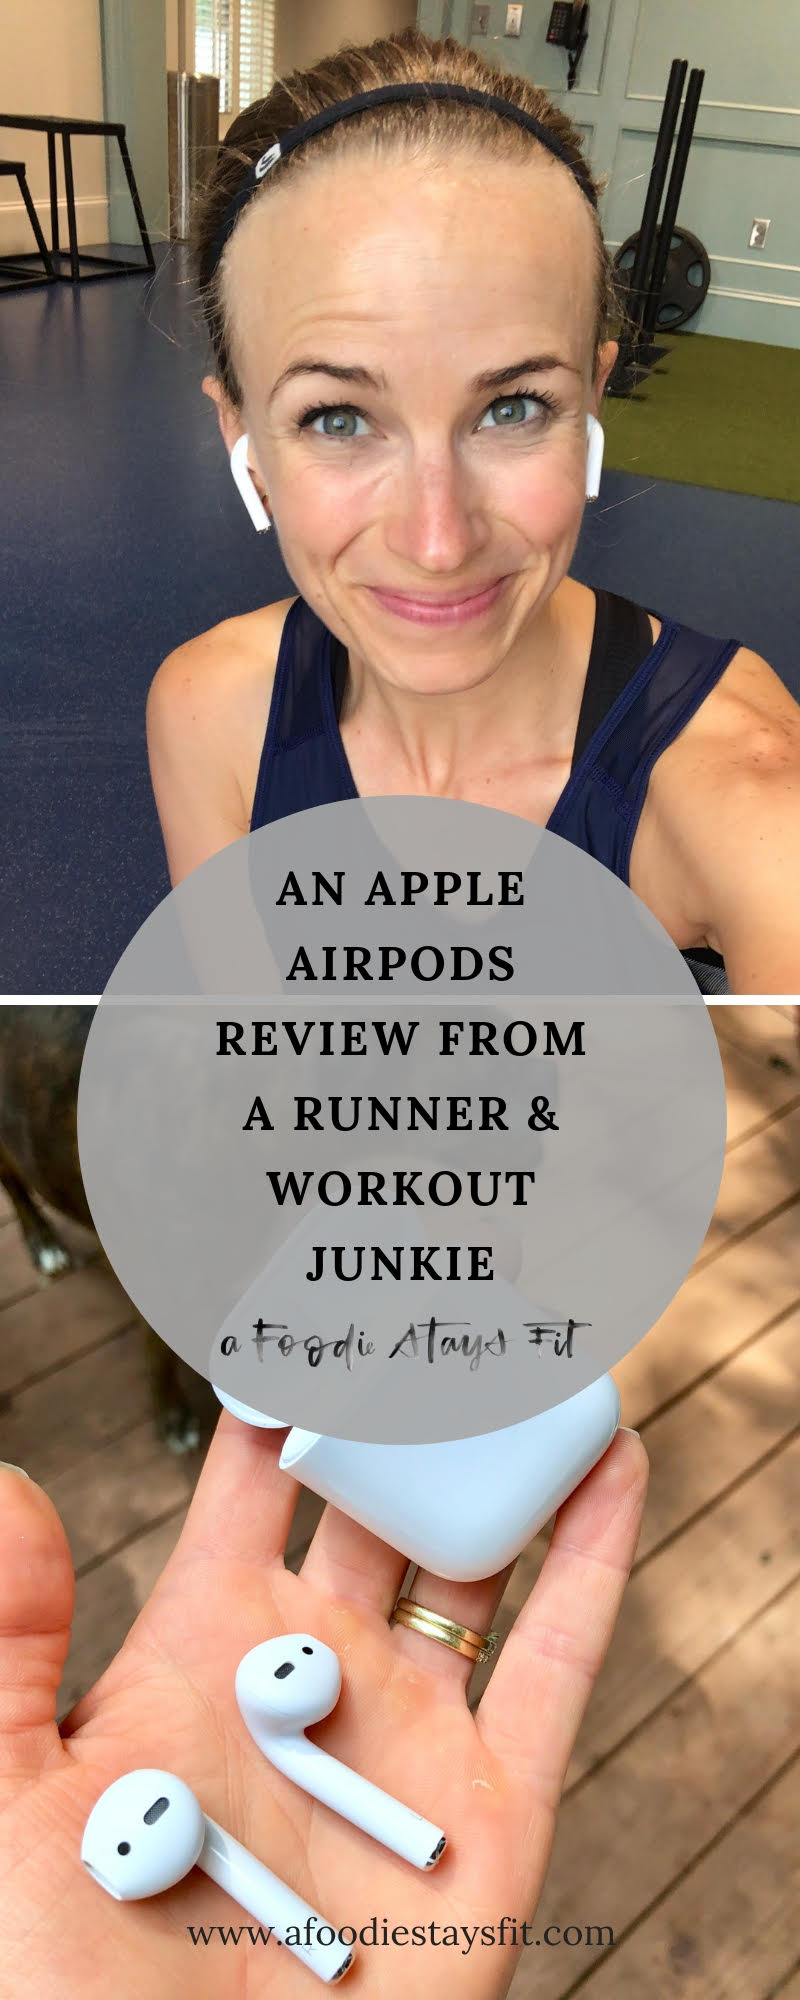 do airpods fall out when running